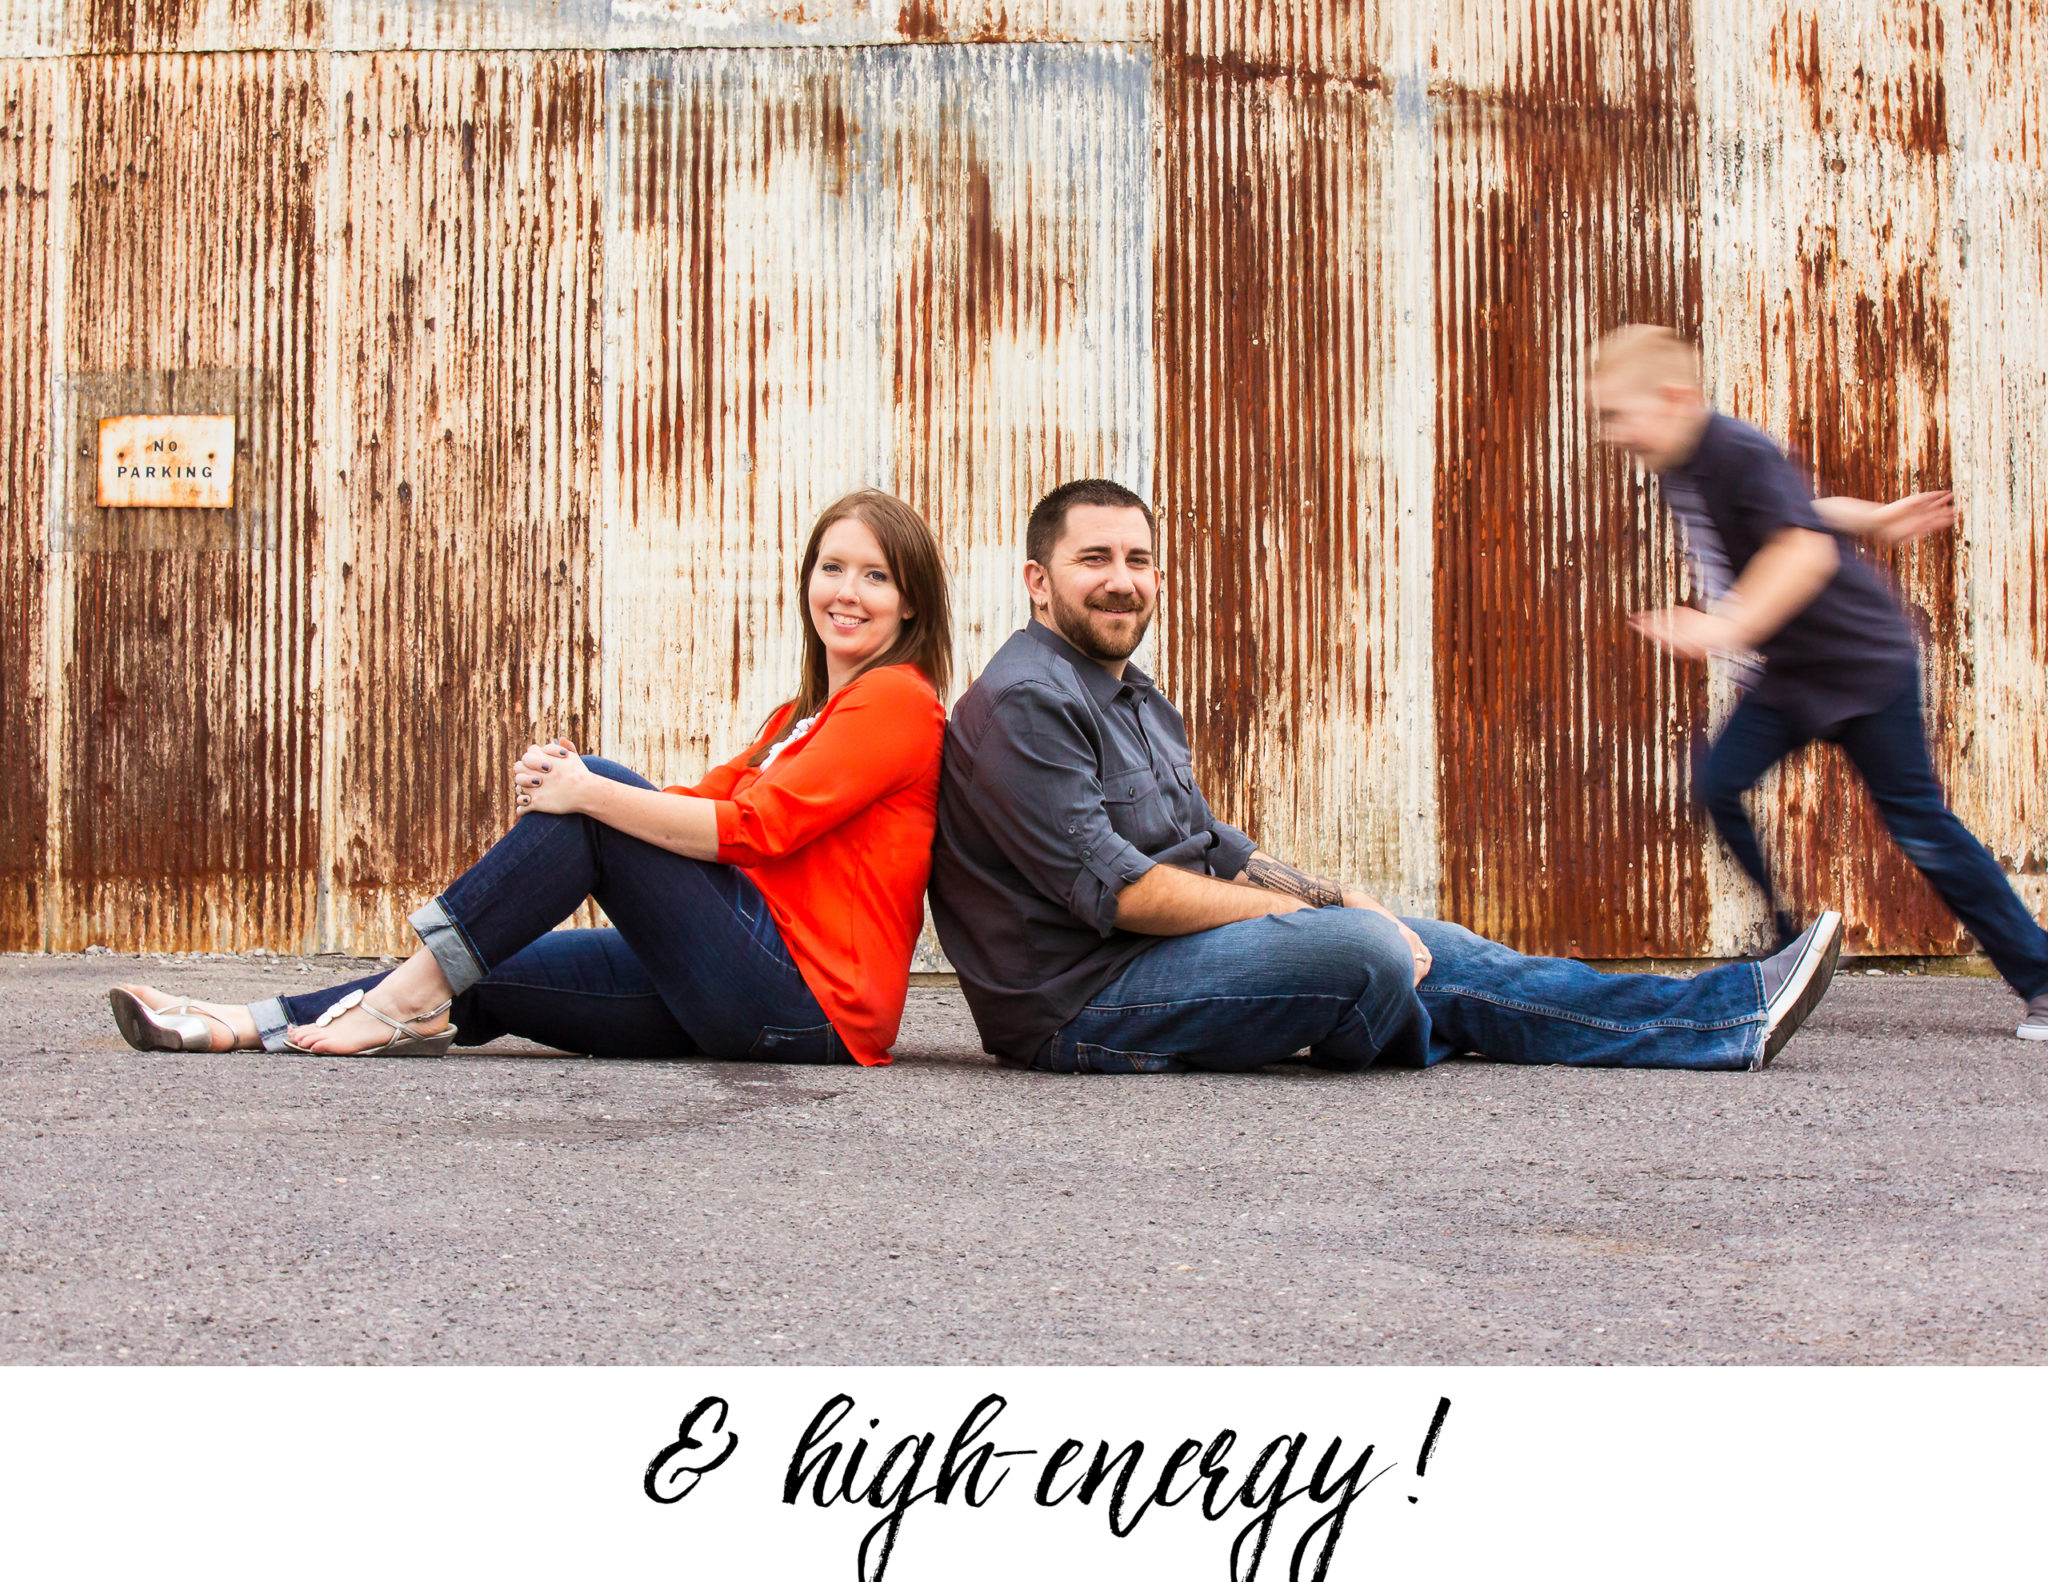 rhinehart-photography-2020-family-portrait-packages8